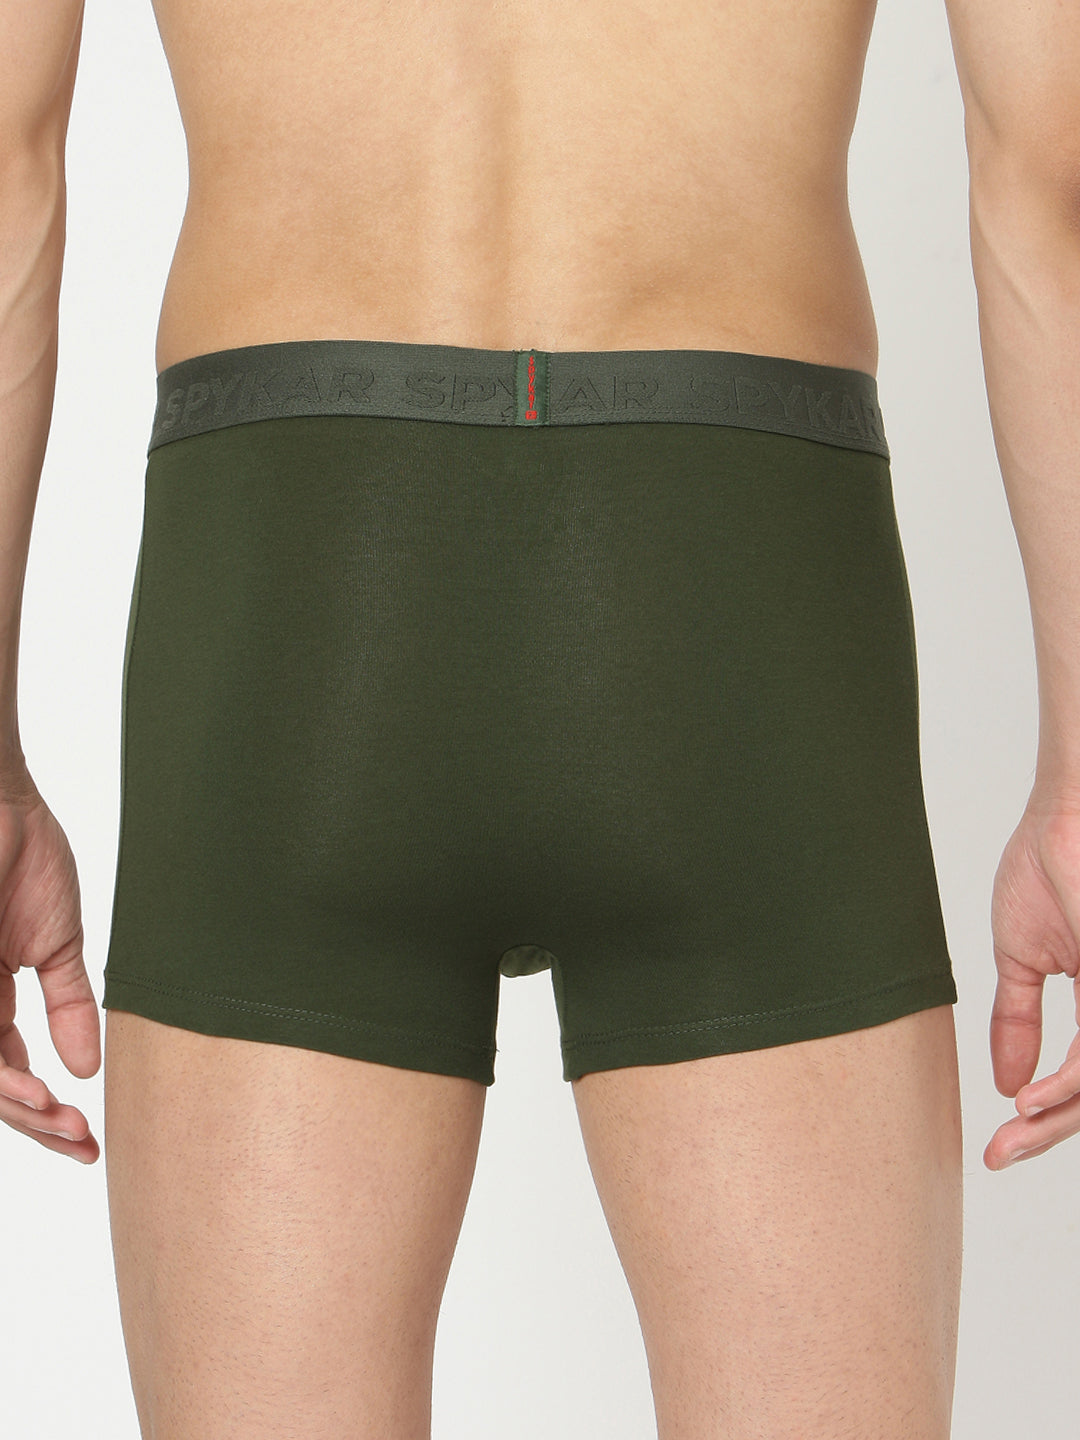 Underjeans Olive Cotton Trunks Pack of 2